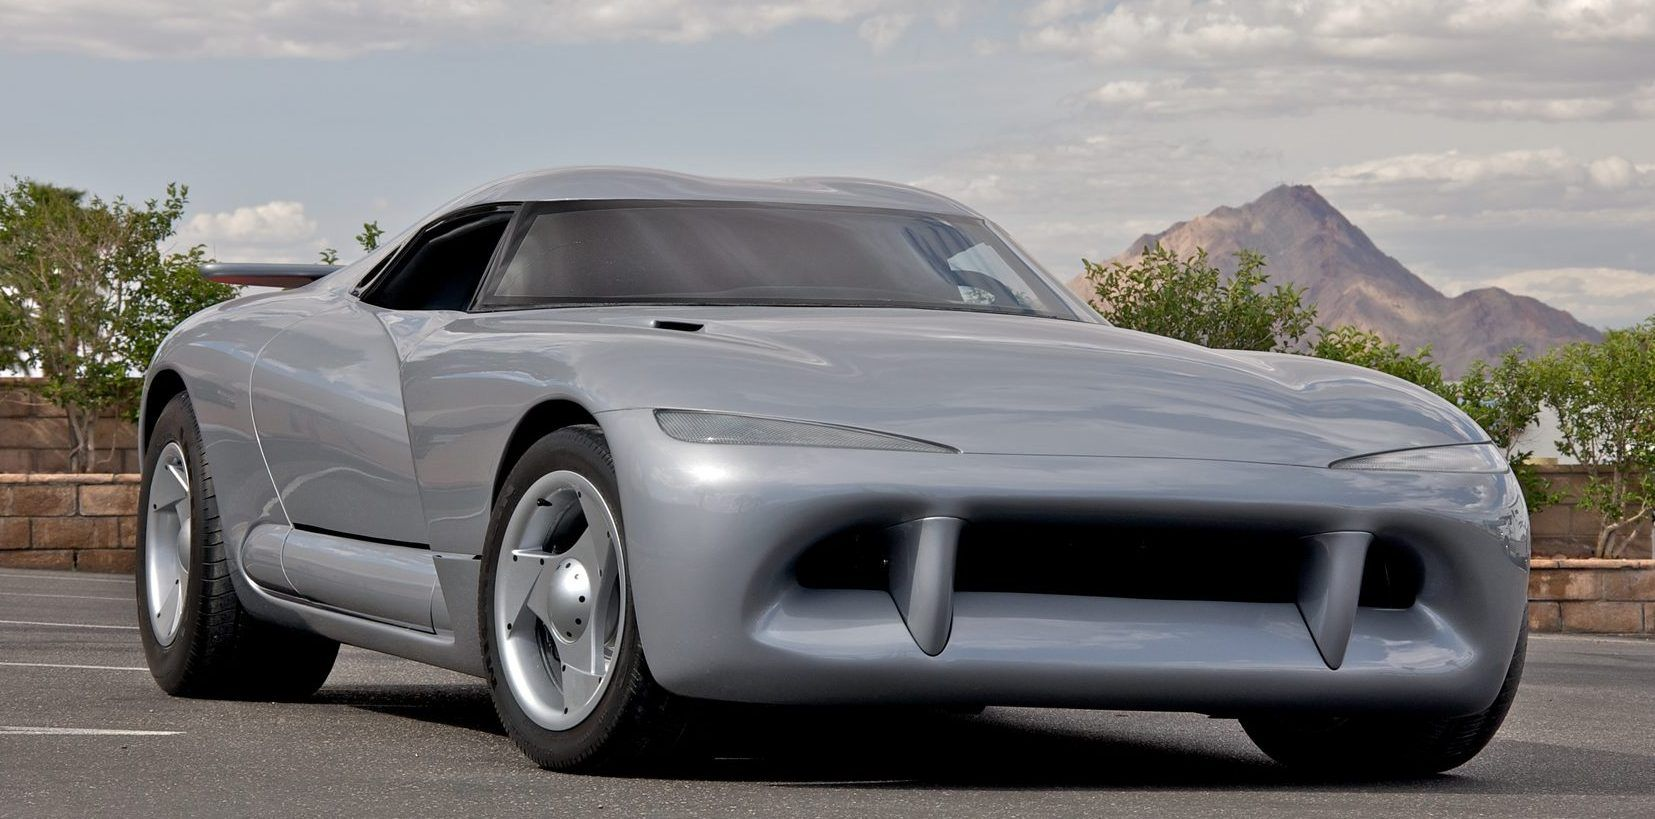 Here's Where The Dodge Muscle Car From Viper Is Today | HotCars